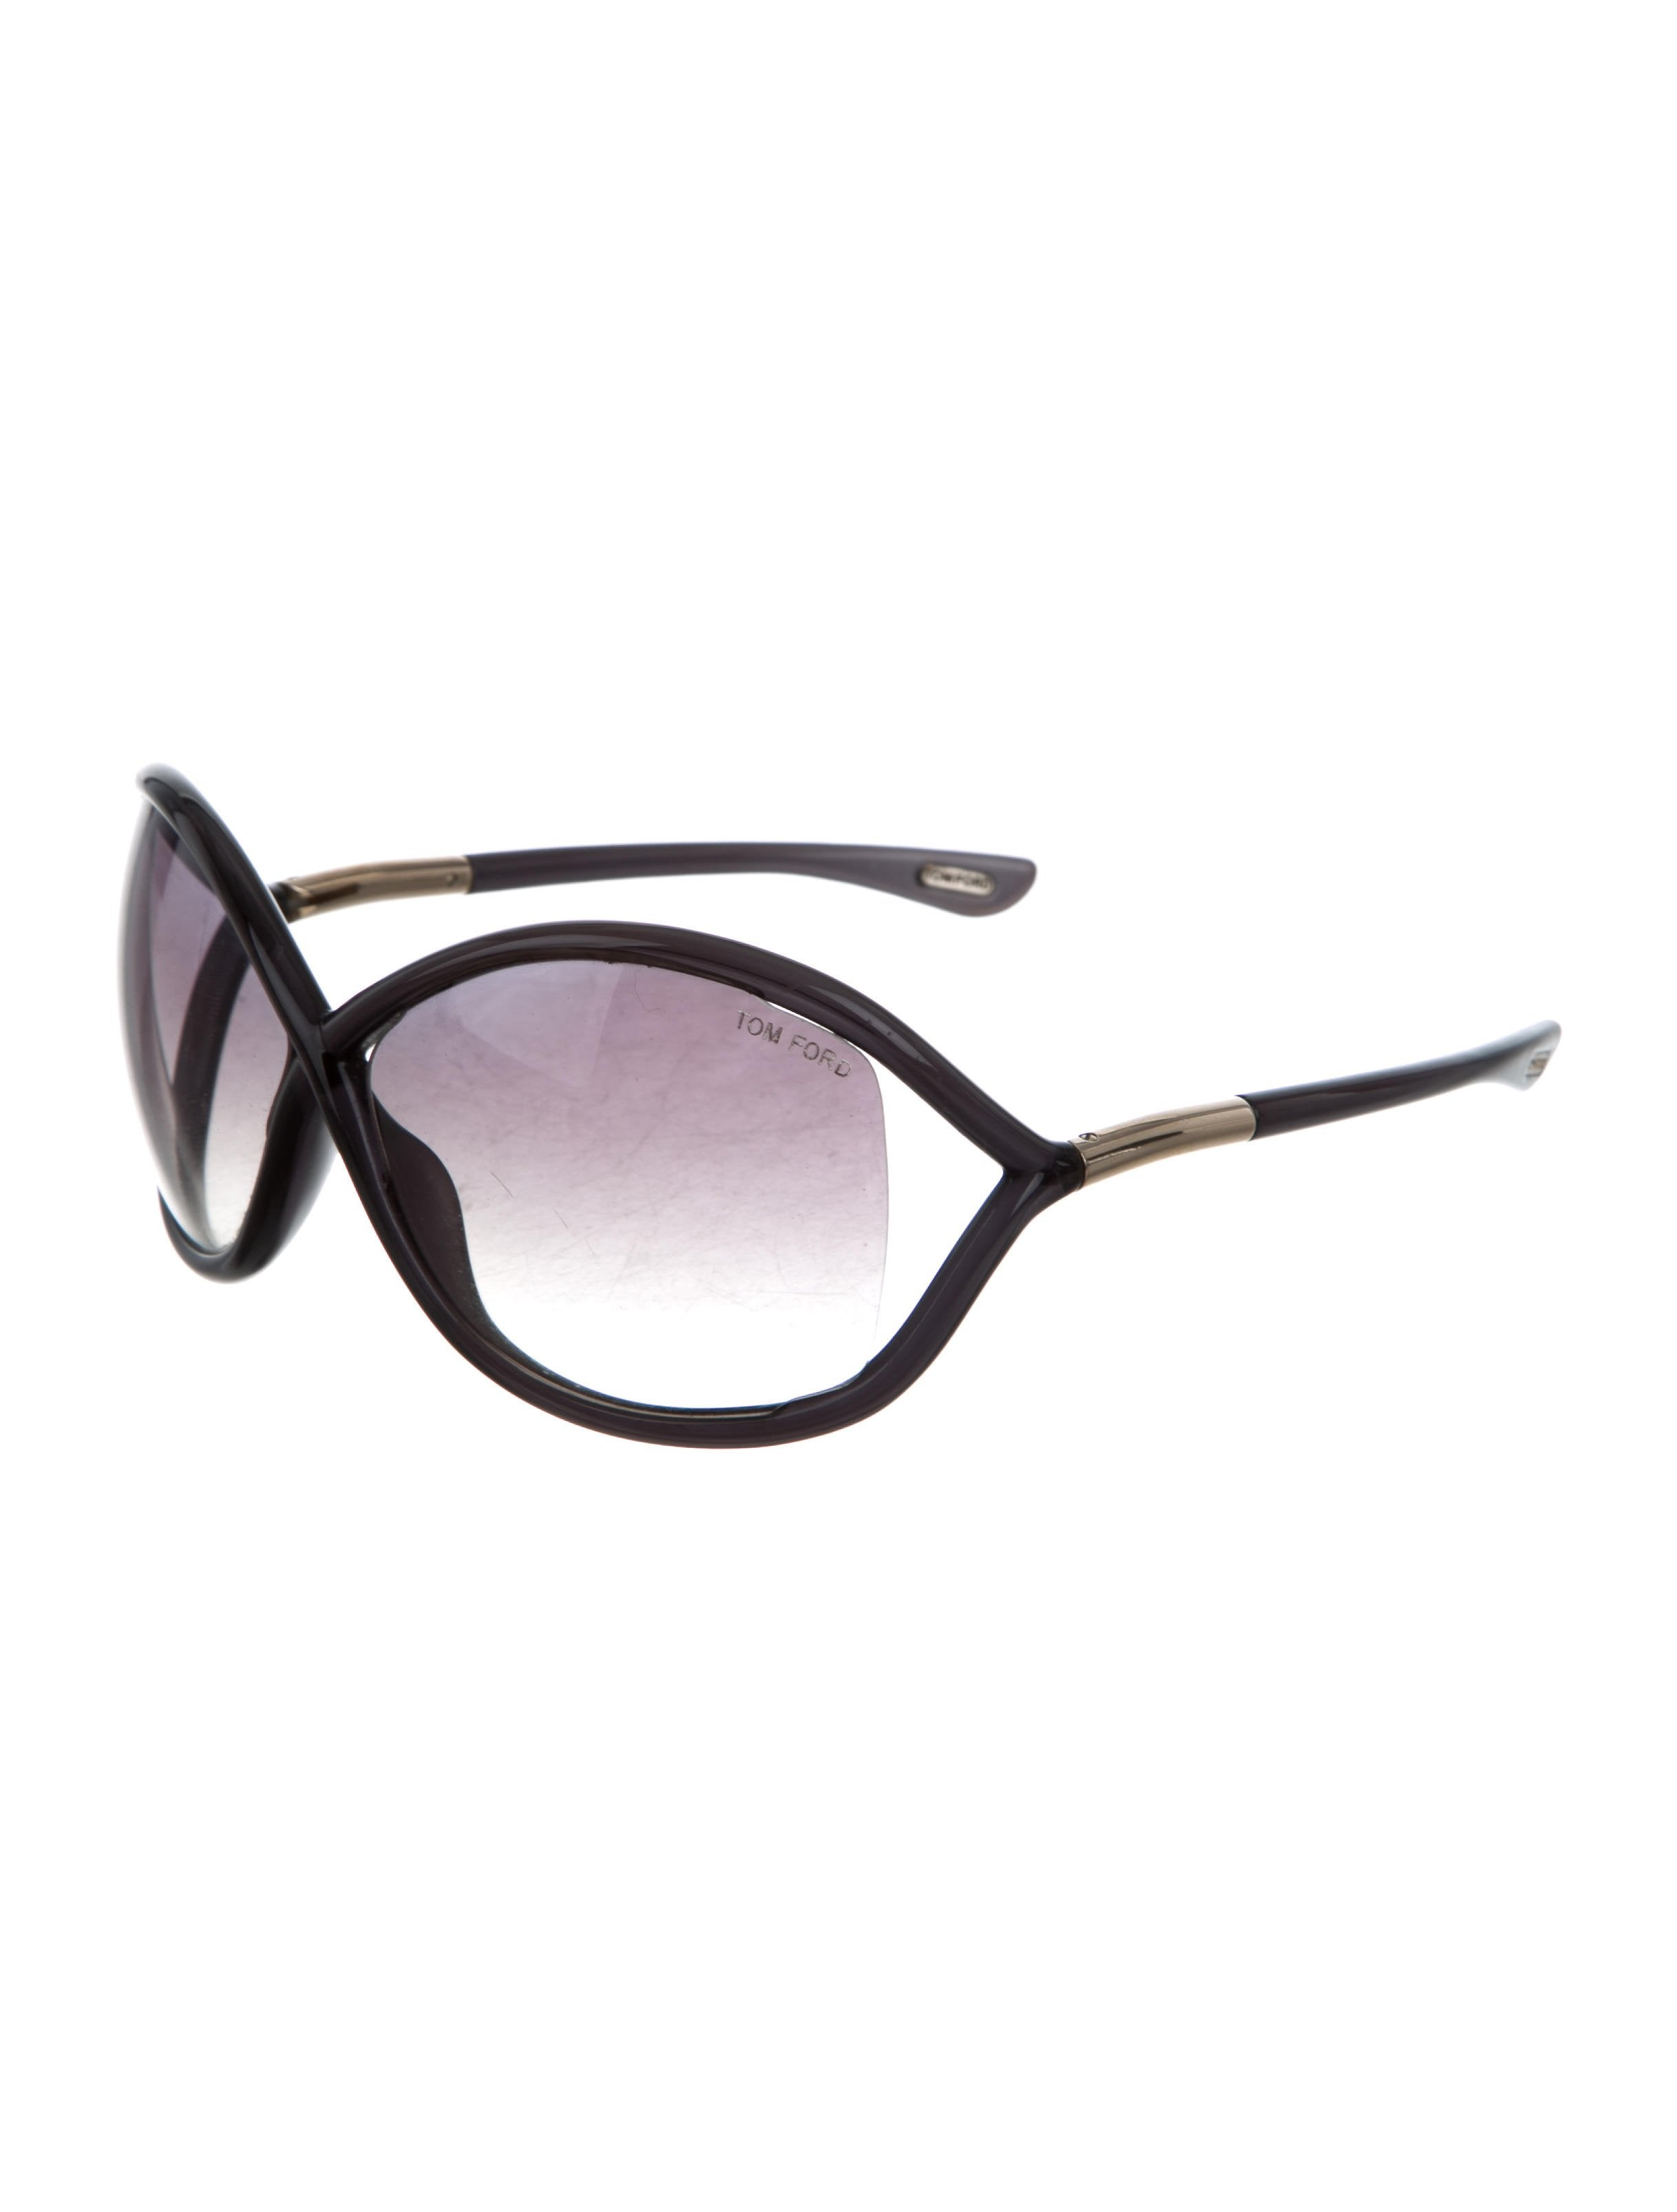 4a753cd923 Women · Accessories  Tom Ford Whitney Oversize Sunglasses. Whitney Oversize  Sunglasses · Whitney Oversize Sunglasses